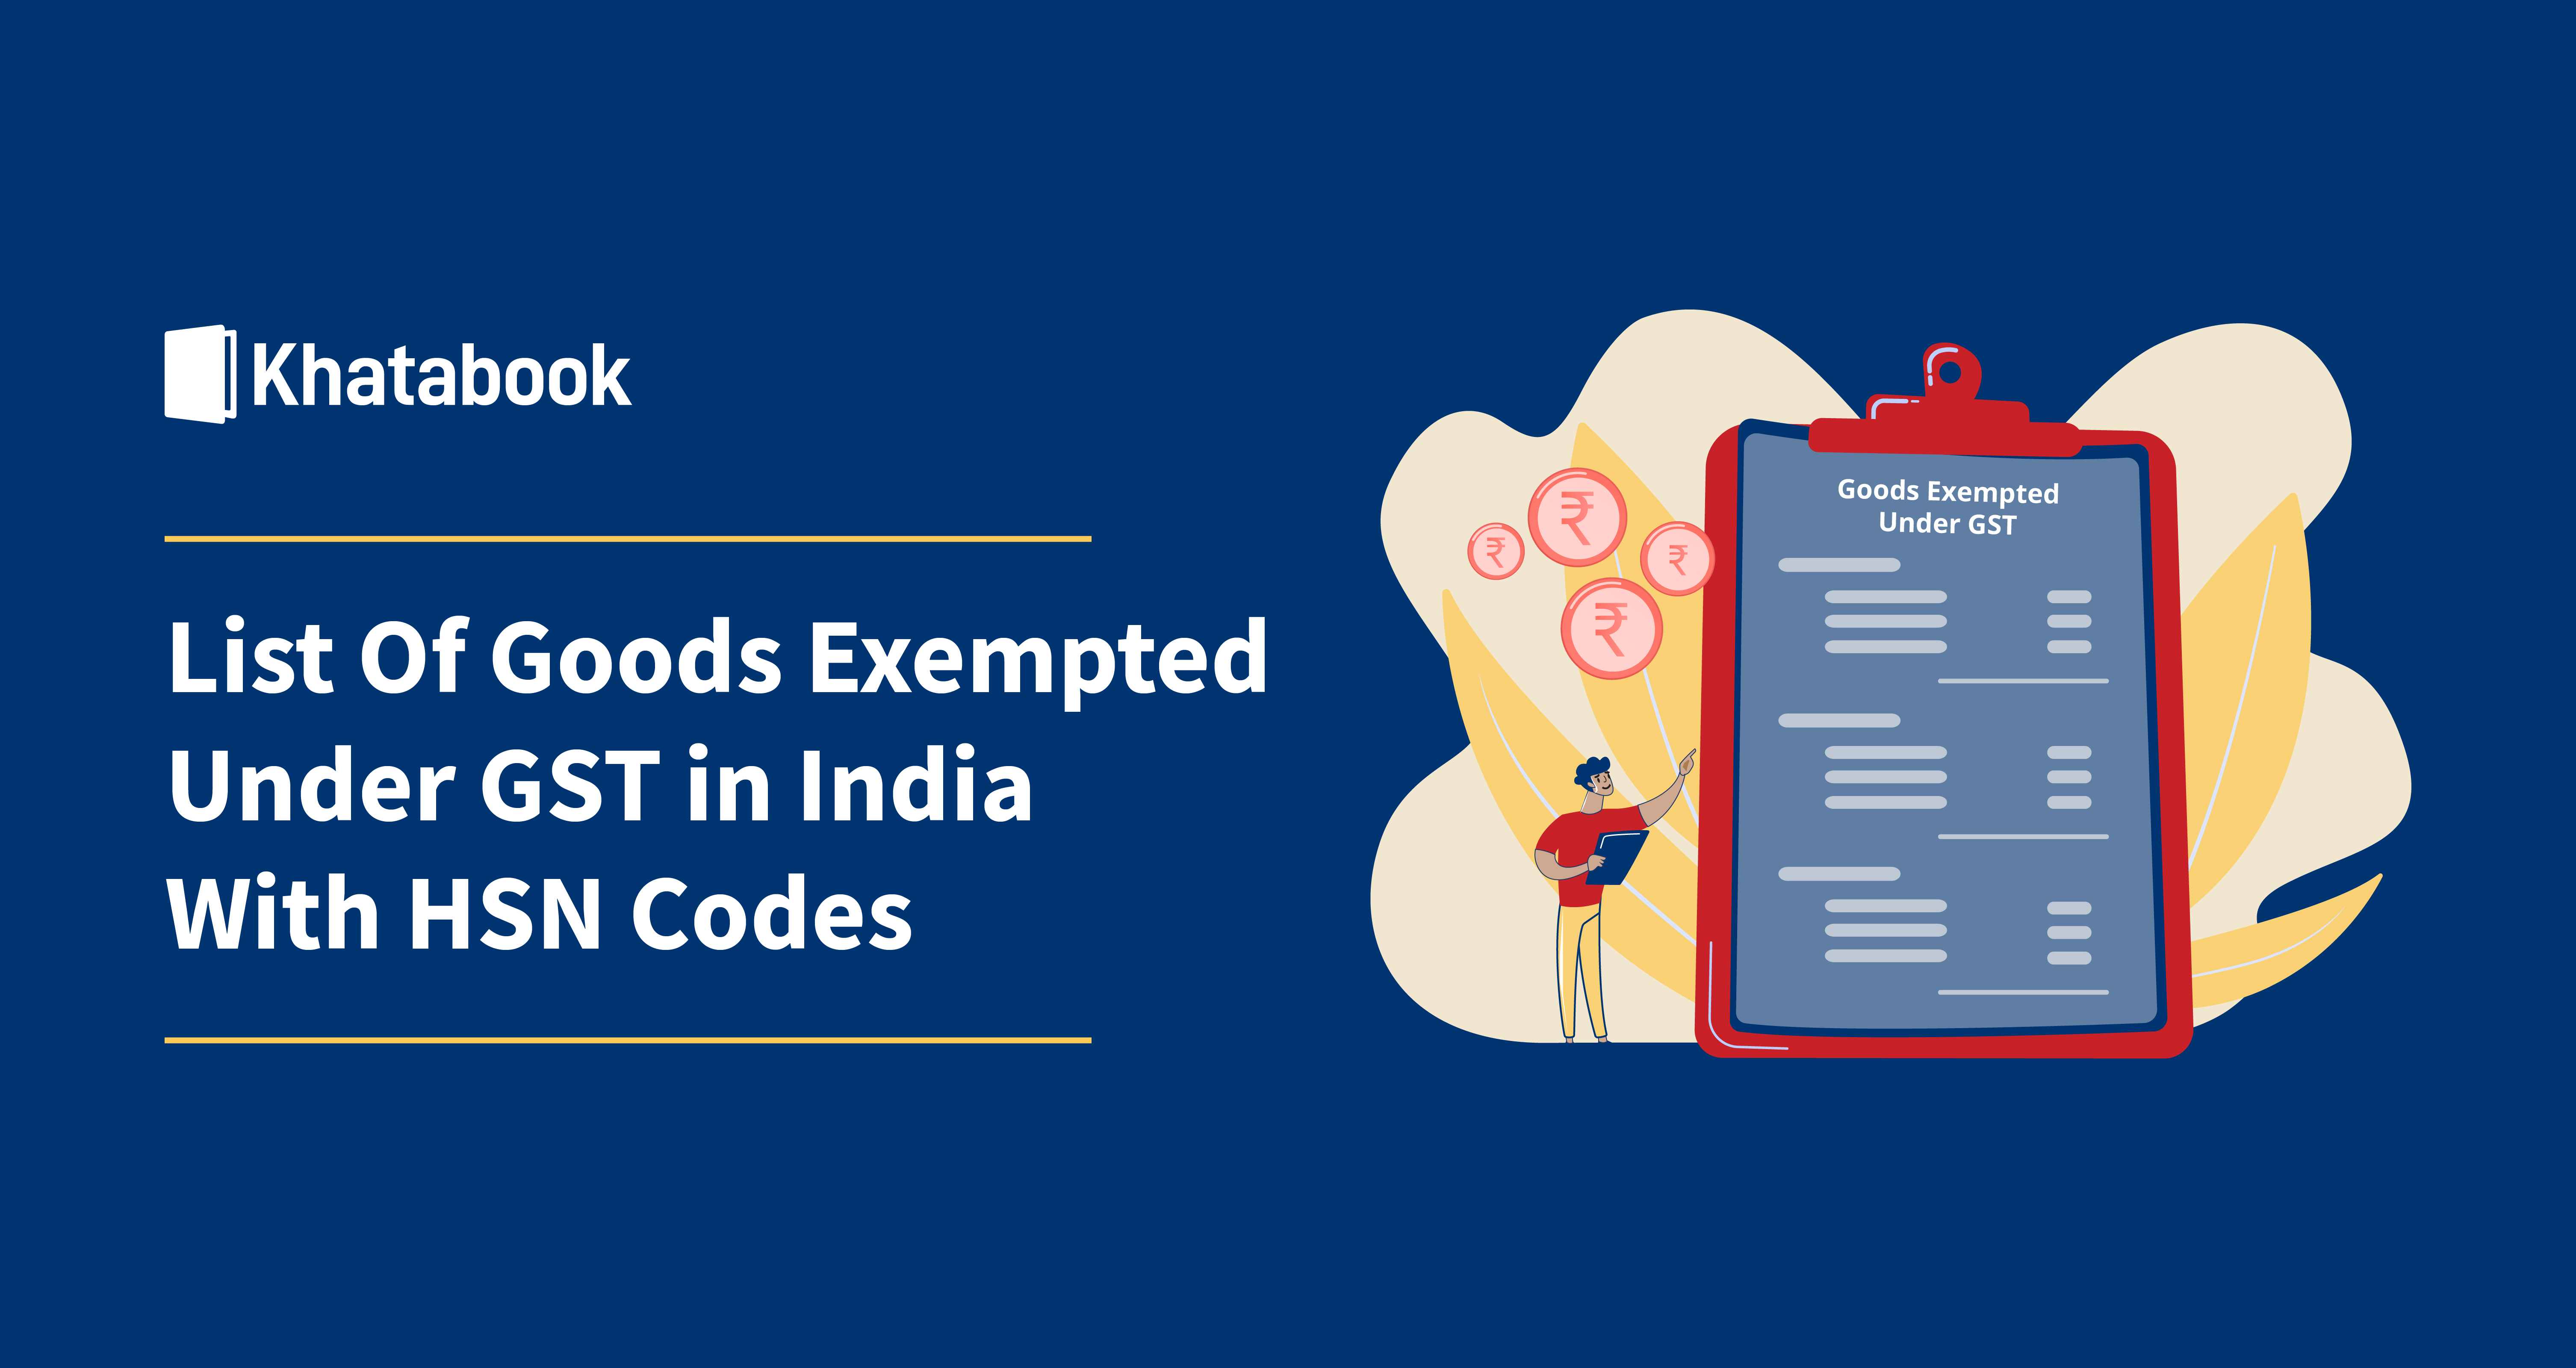 List Of Goods Exempted Under GST in India with HSN Code